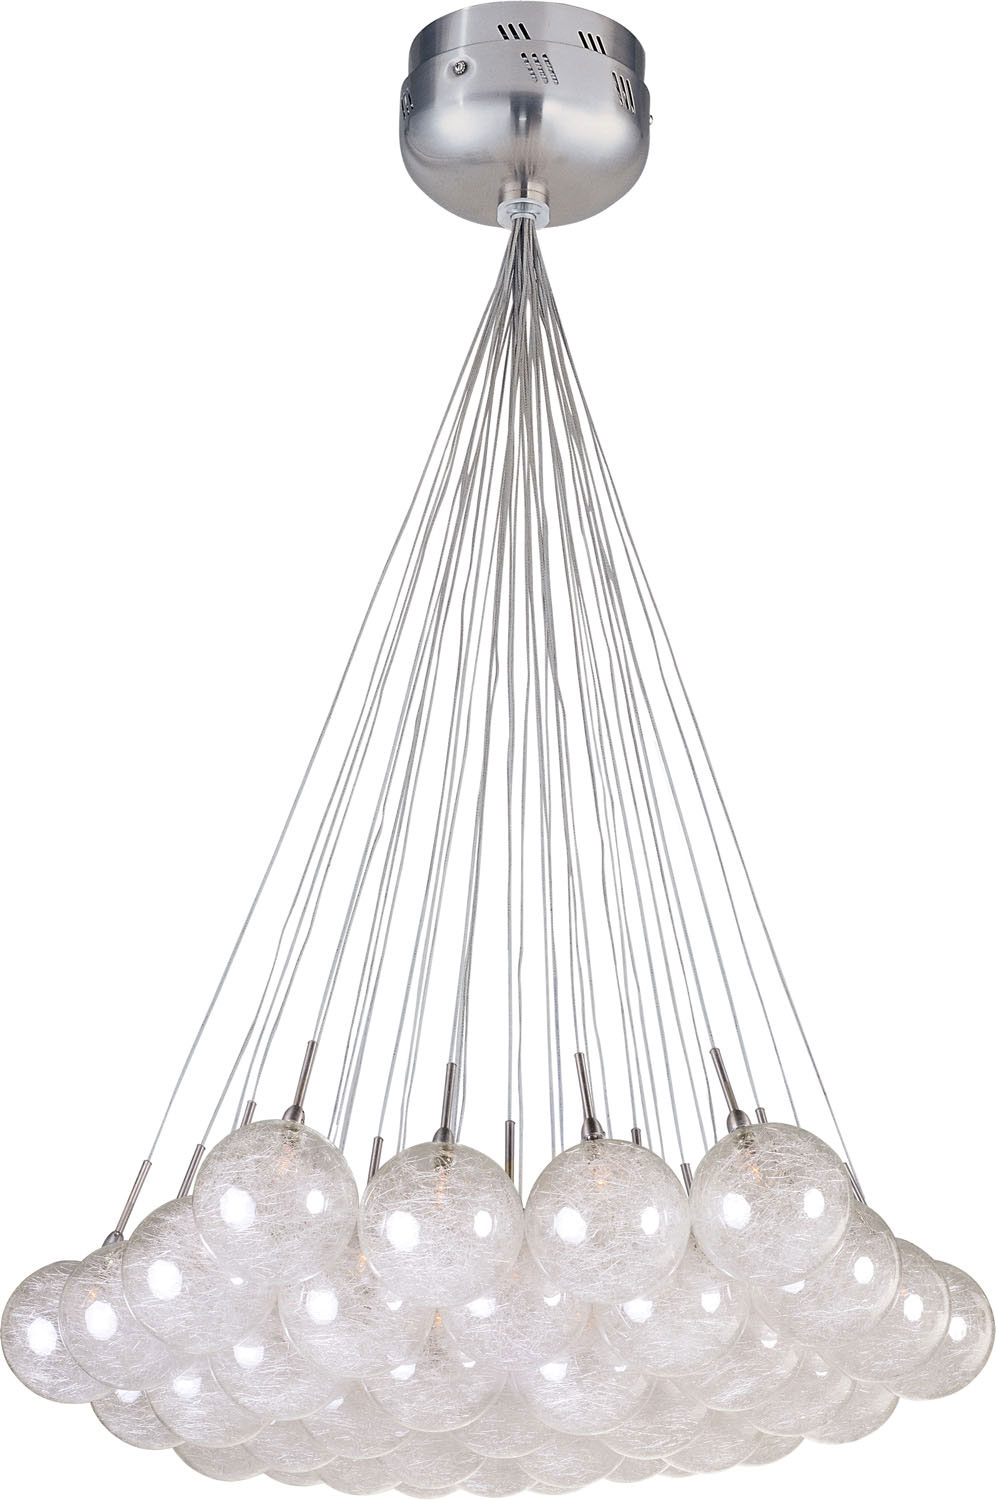 37 Light Pendant from the Starburst collection by ET2 E20112 79